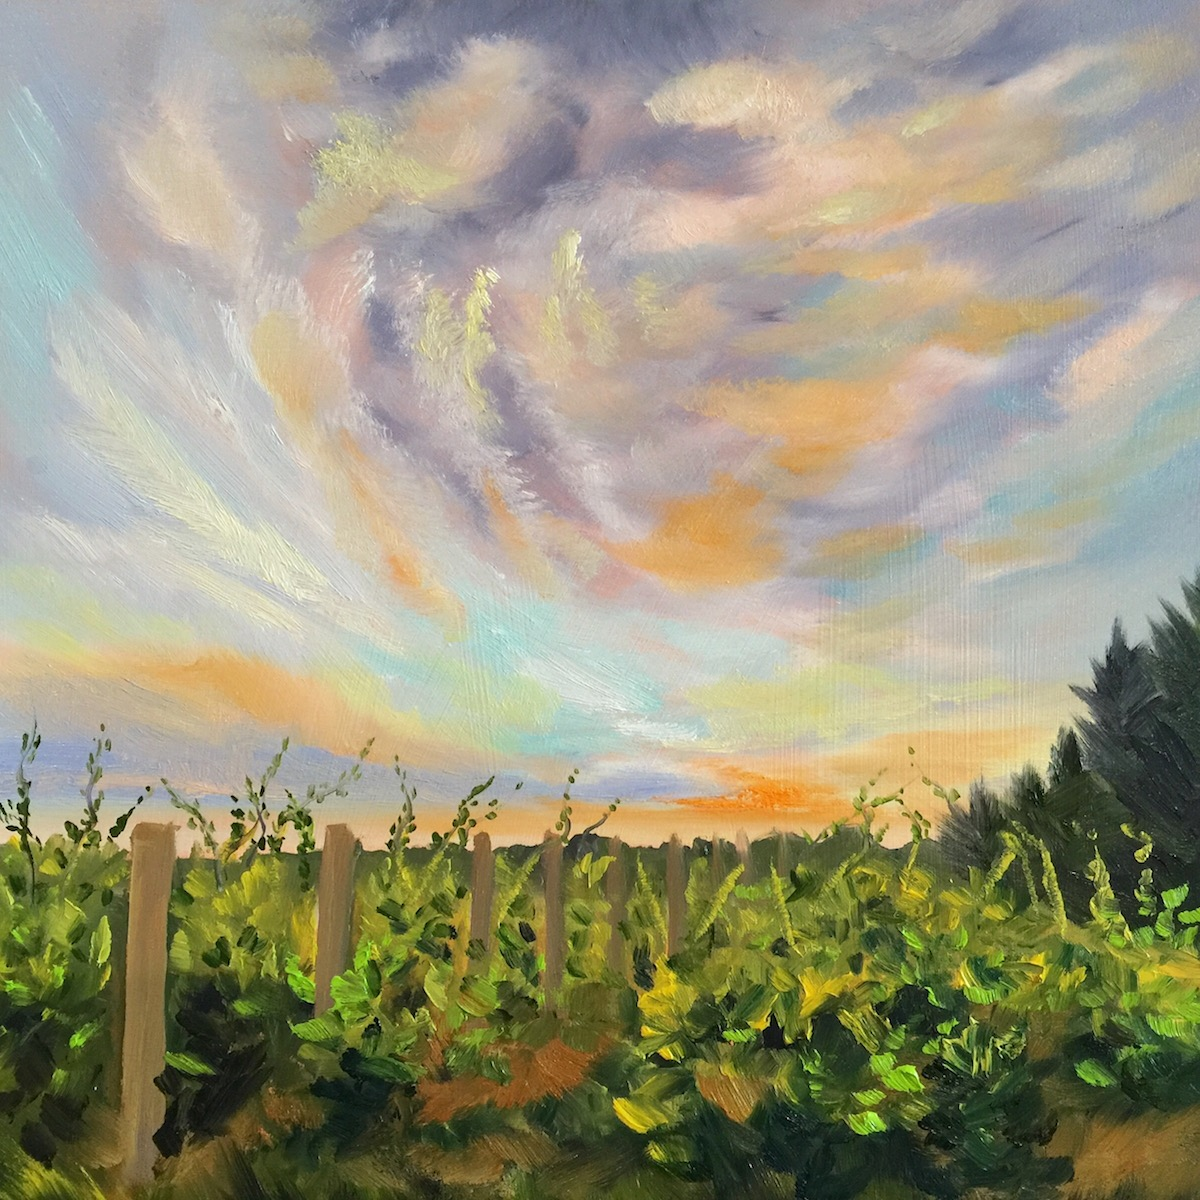 Silver Leaf Winery - Painting by Stephanie Schlatter